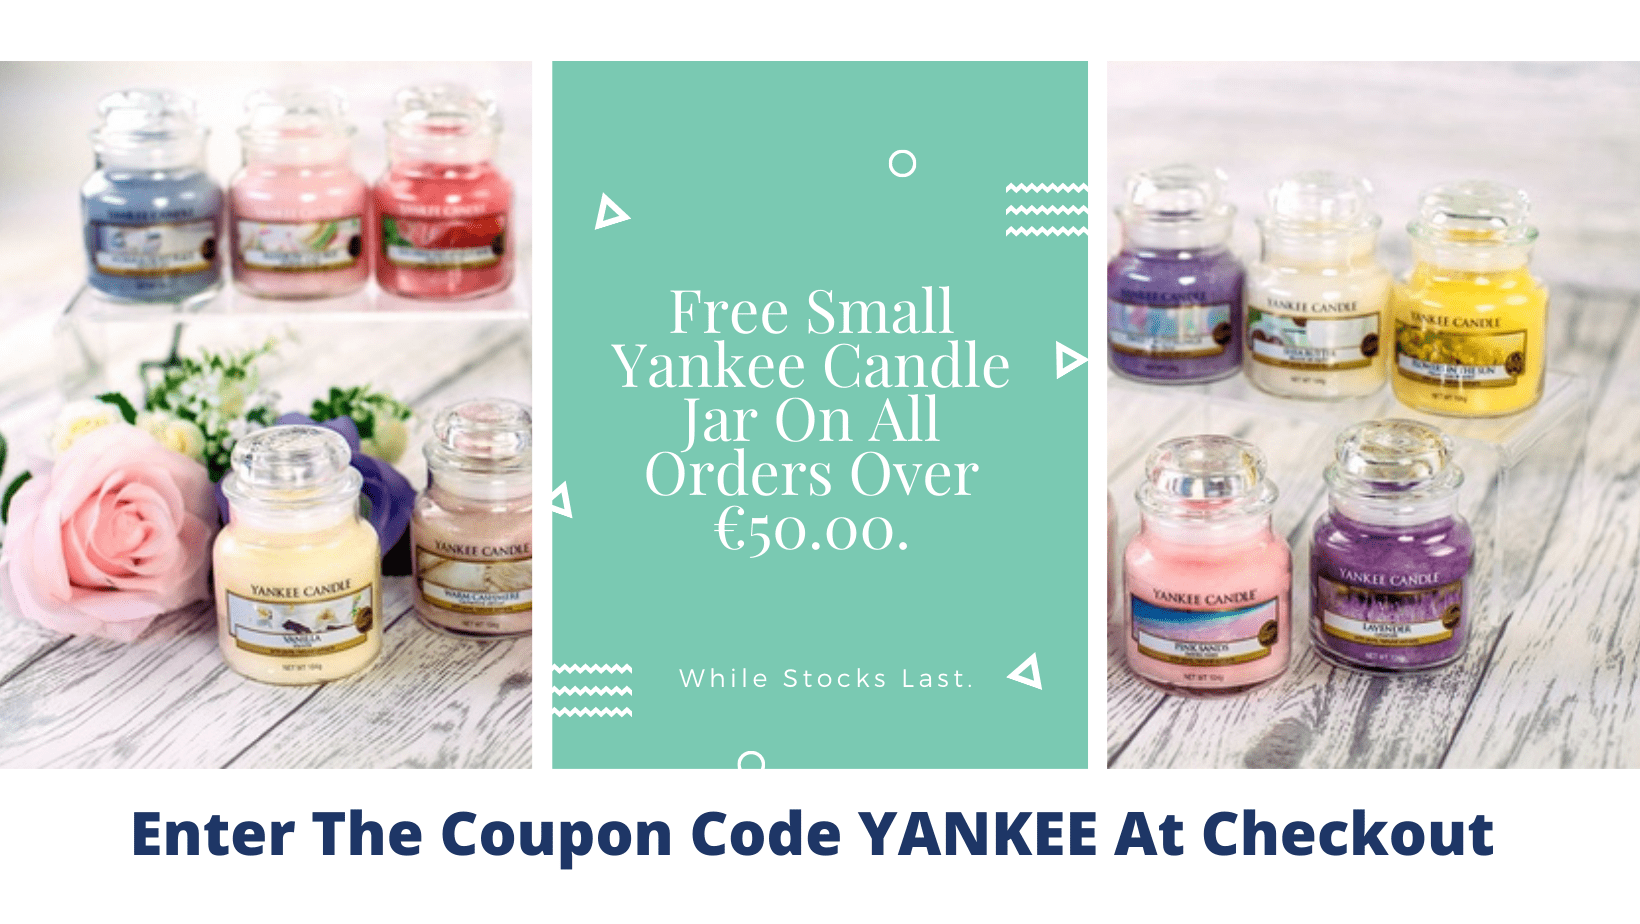 Free-Small-Yankee-Candle-Jar-On-All-Orders-Over-E50.00.-